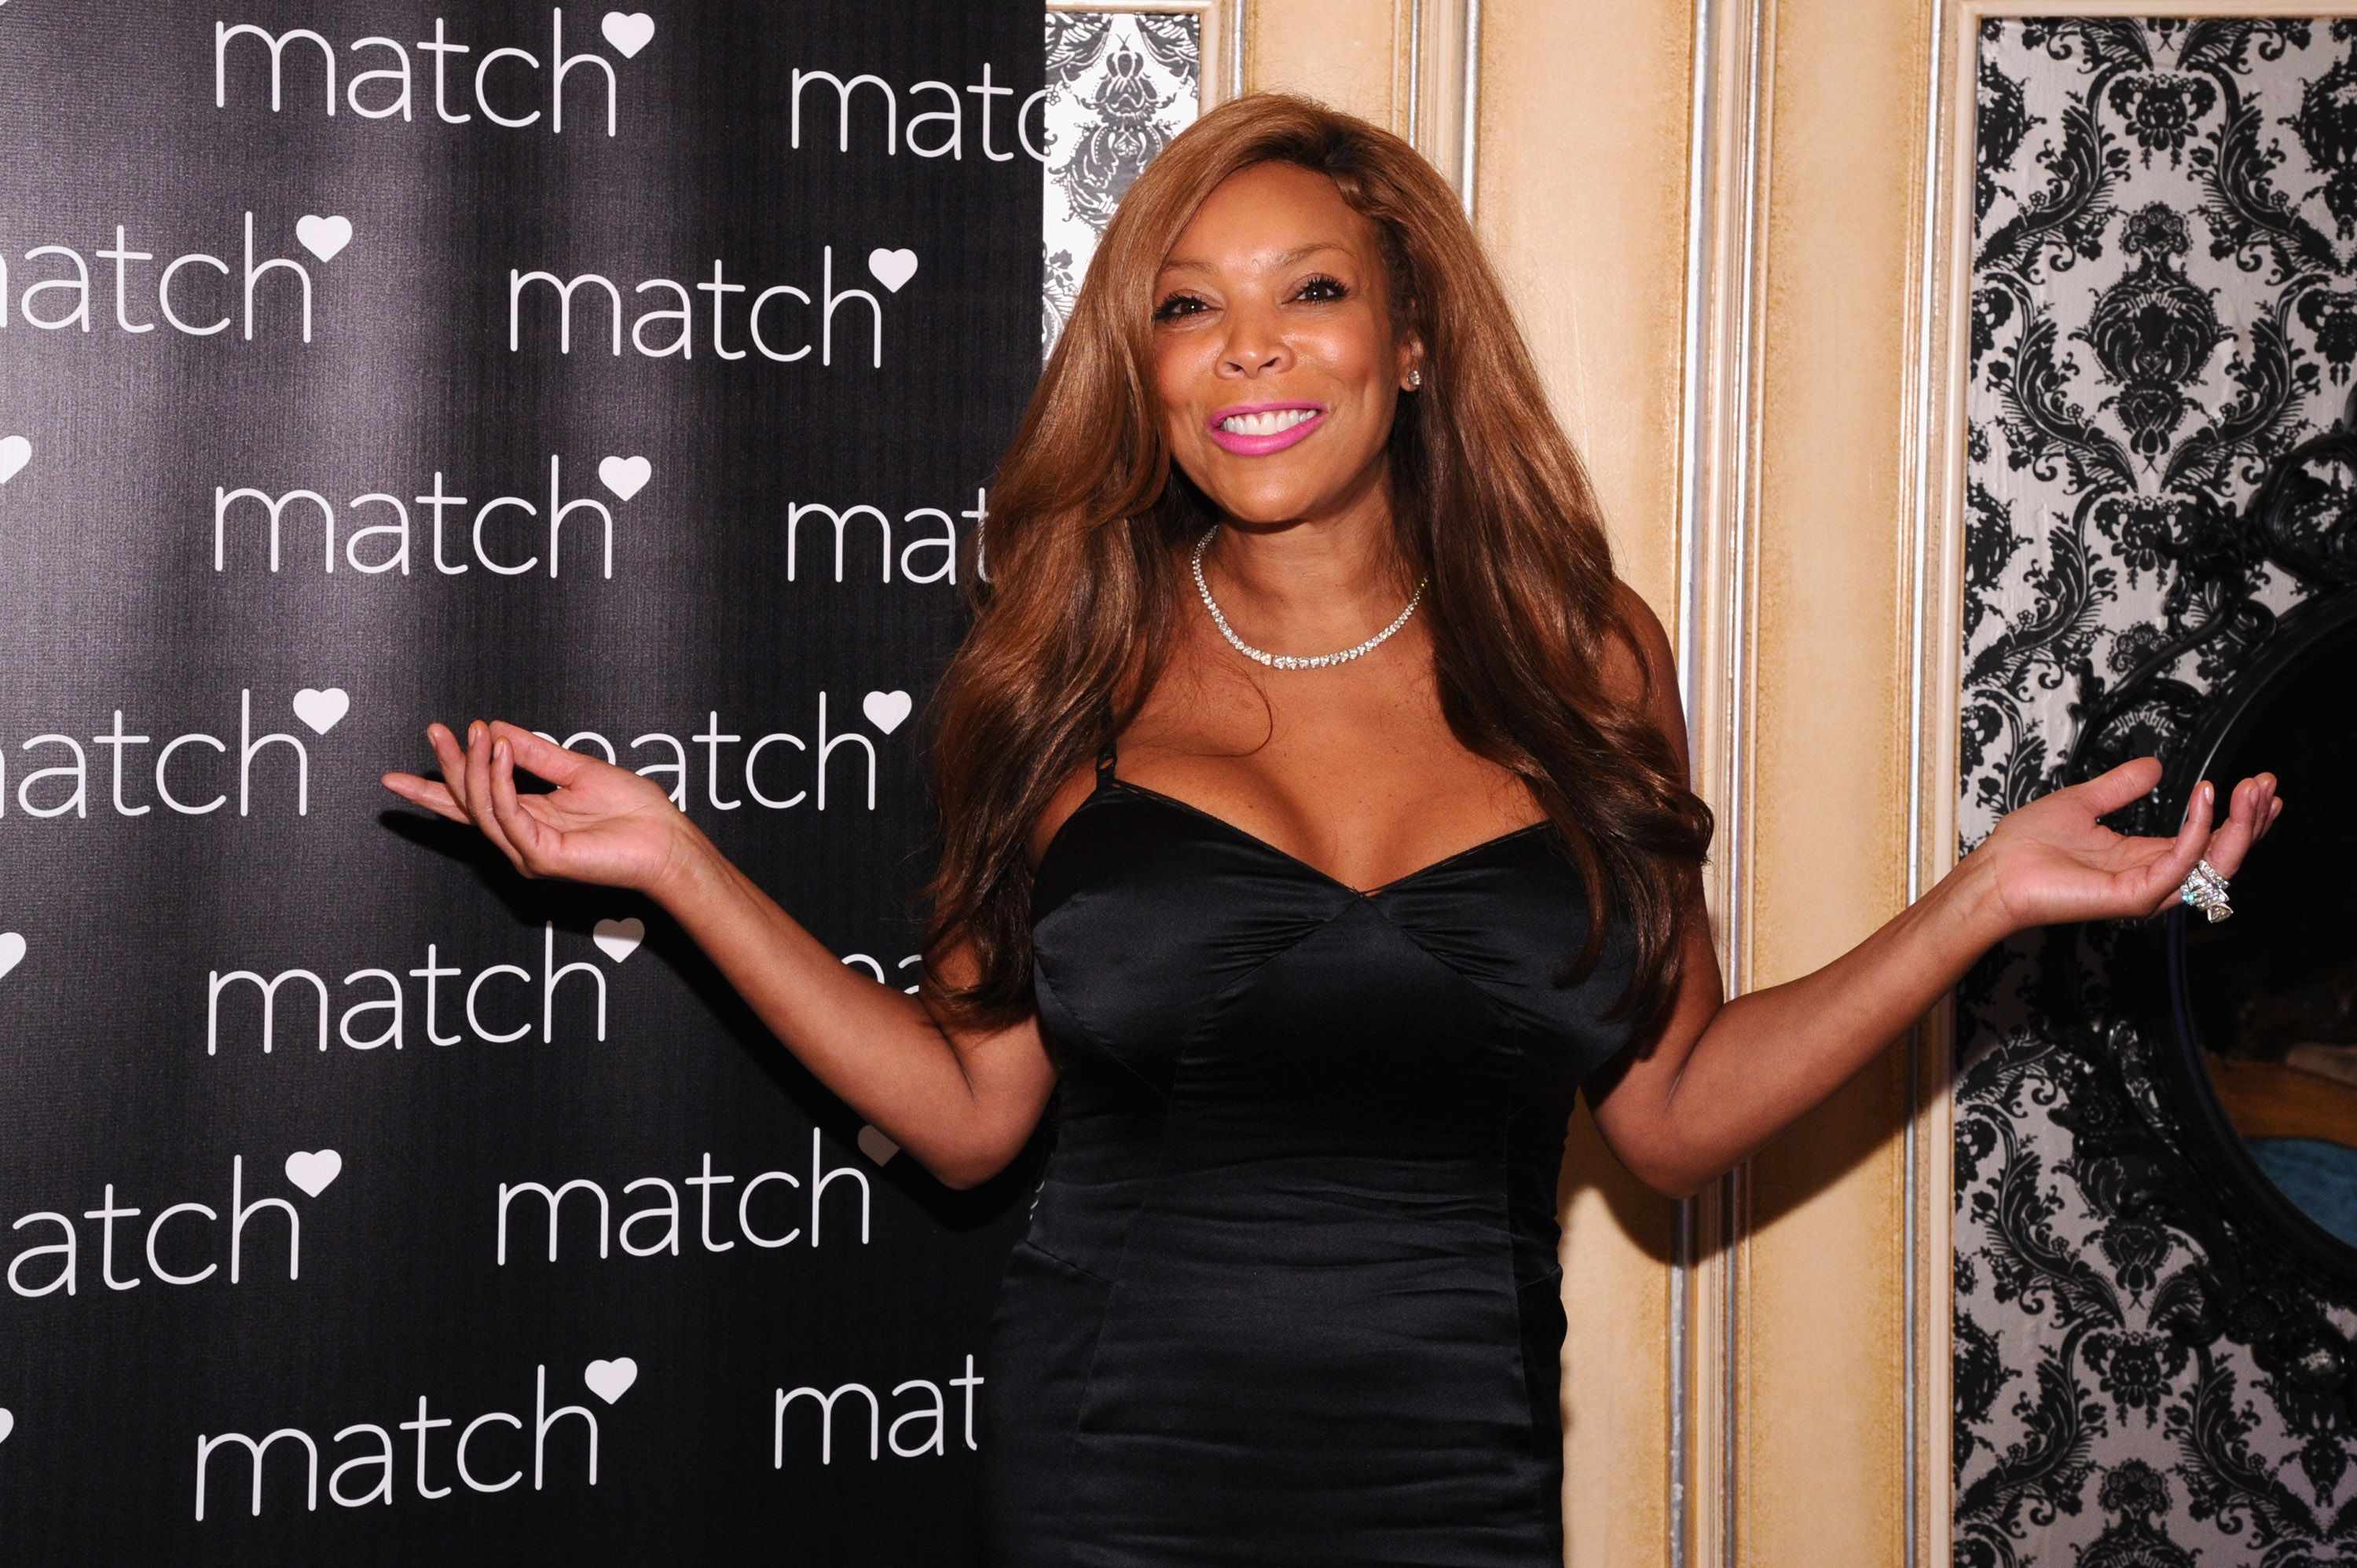 """Wendy Williams attends a 2014 benefit event of """"The Match Bachelor Showcase"""" in New York City. 